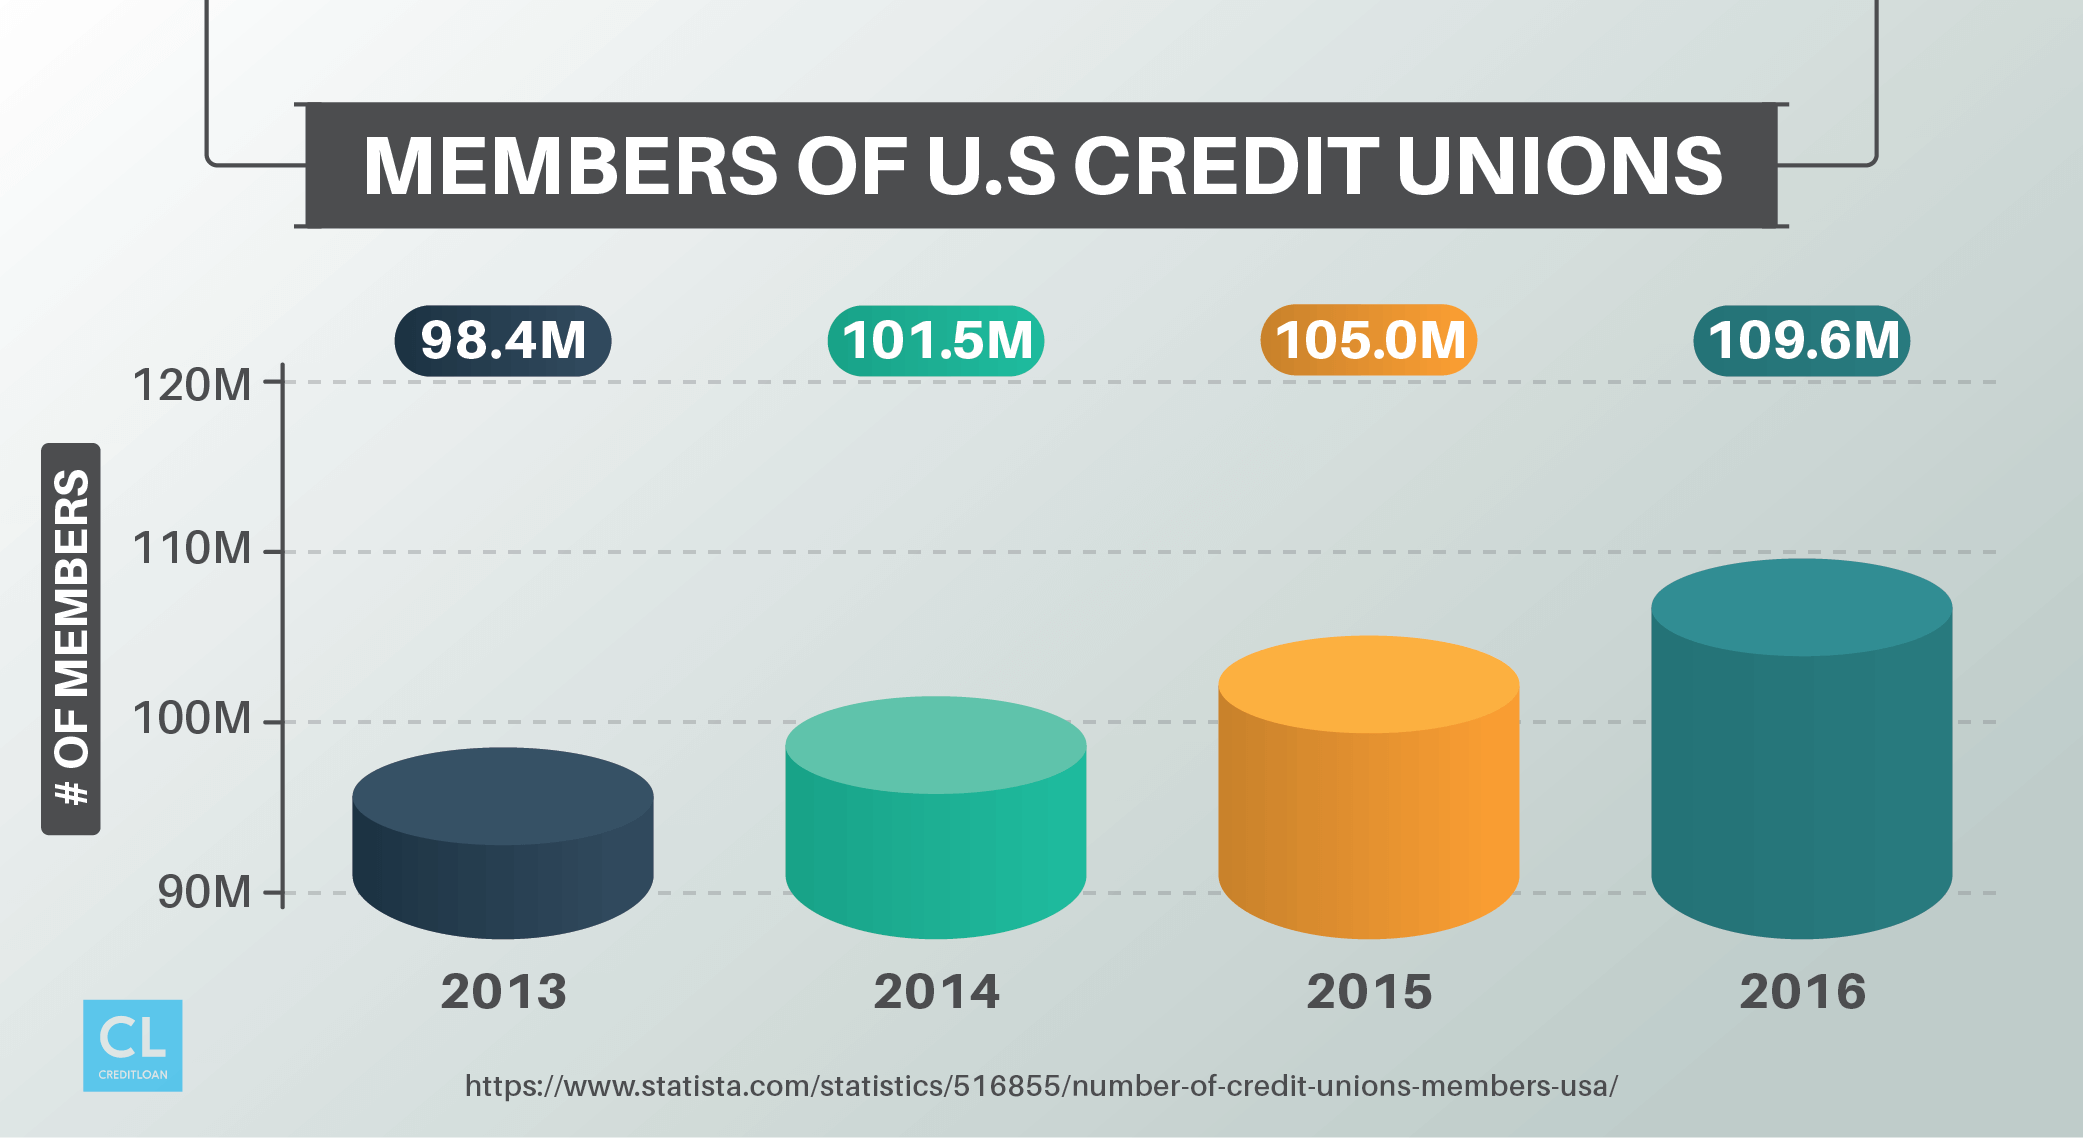 Members of U.S Credit Unions from 2013-2016